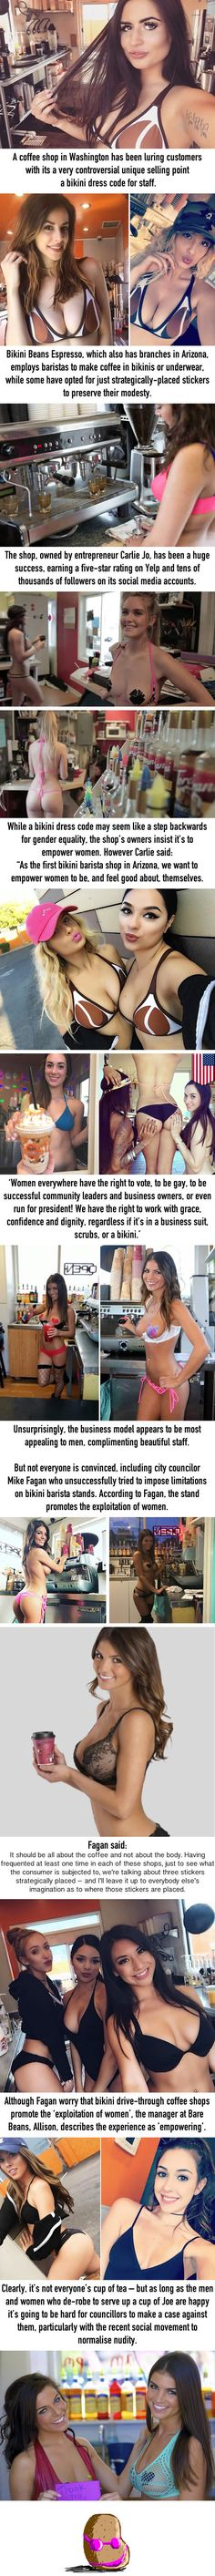 Baristas serve drinks wearing just bikini bottoms and NIPPLE PASTIES (and their female boss claims it's 'empowering')